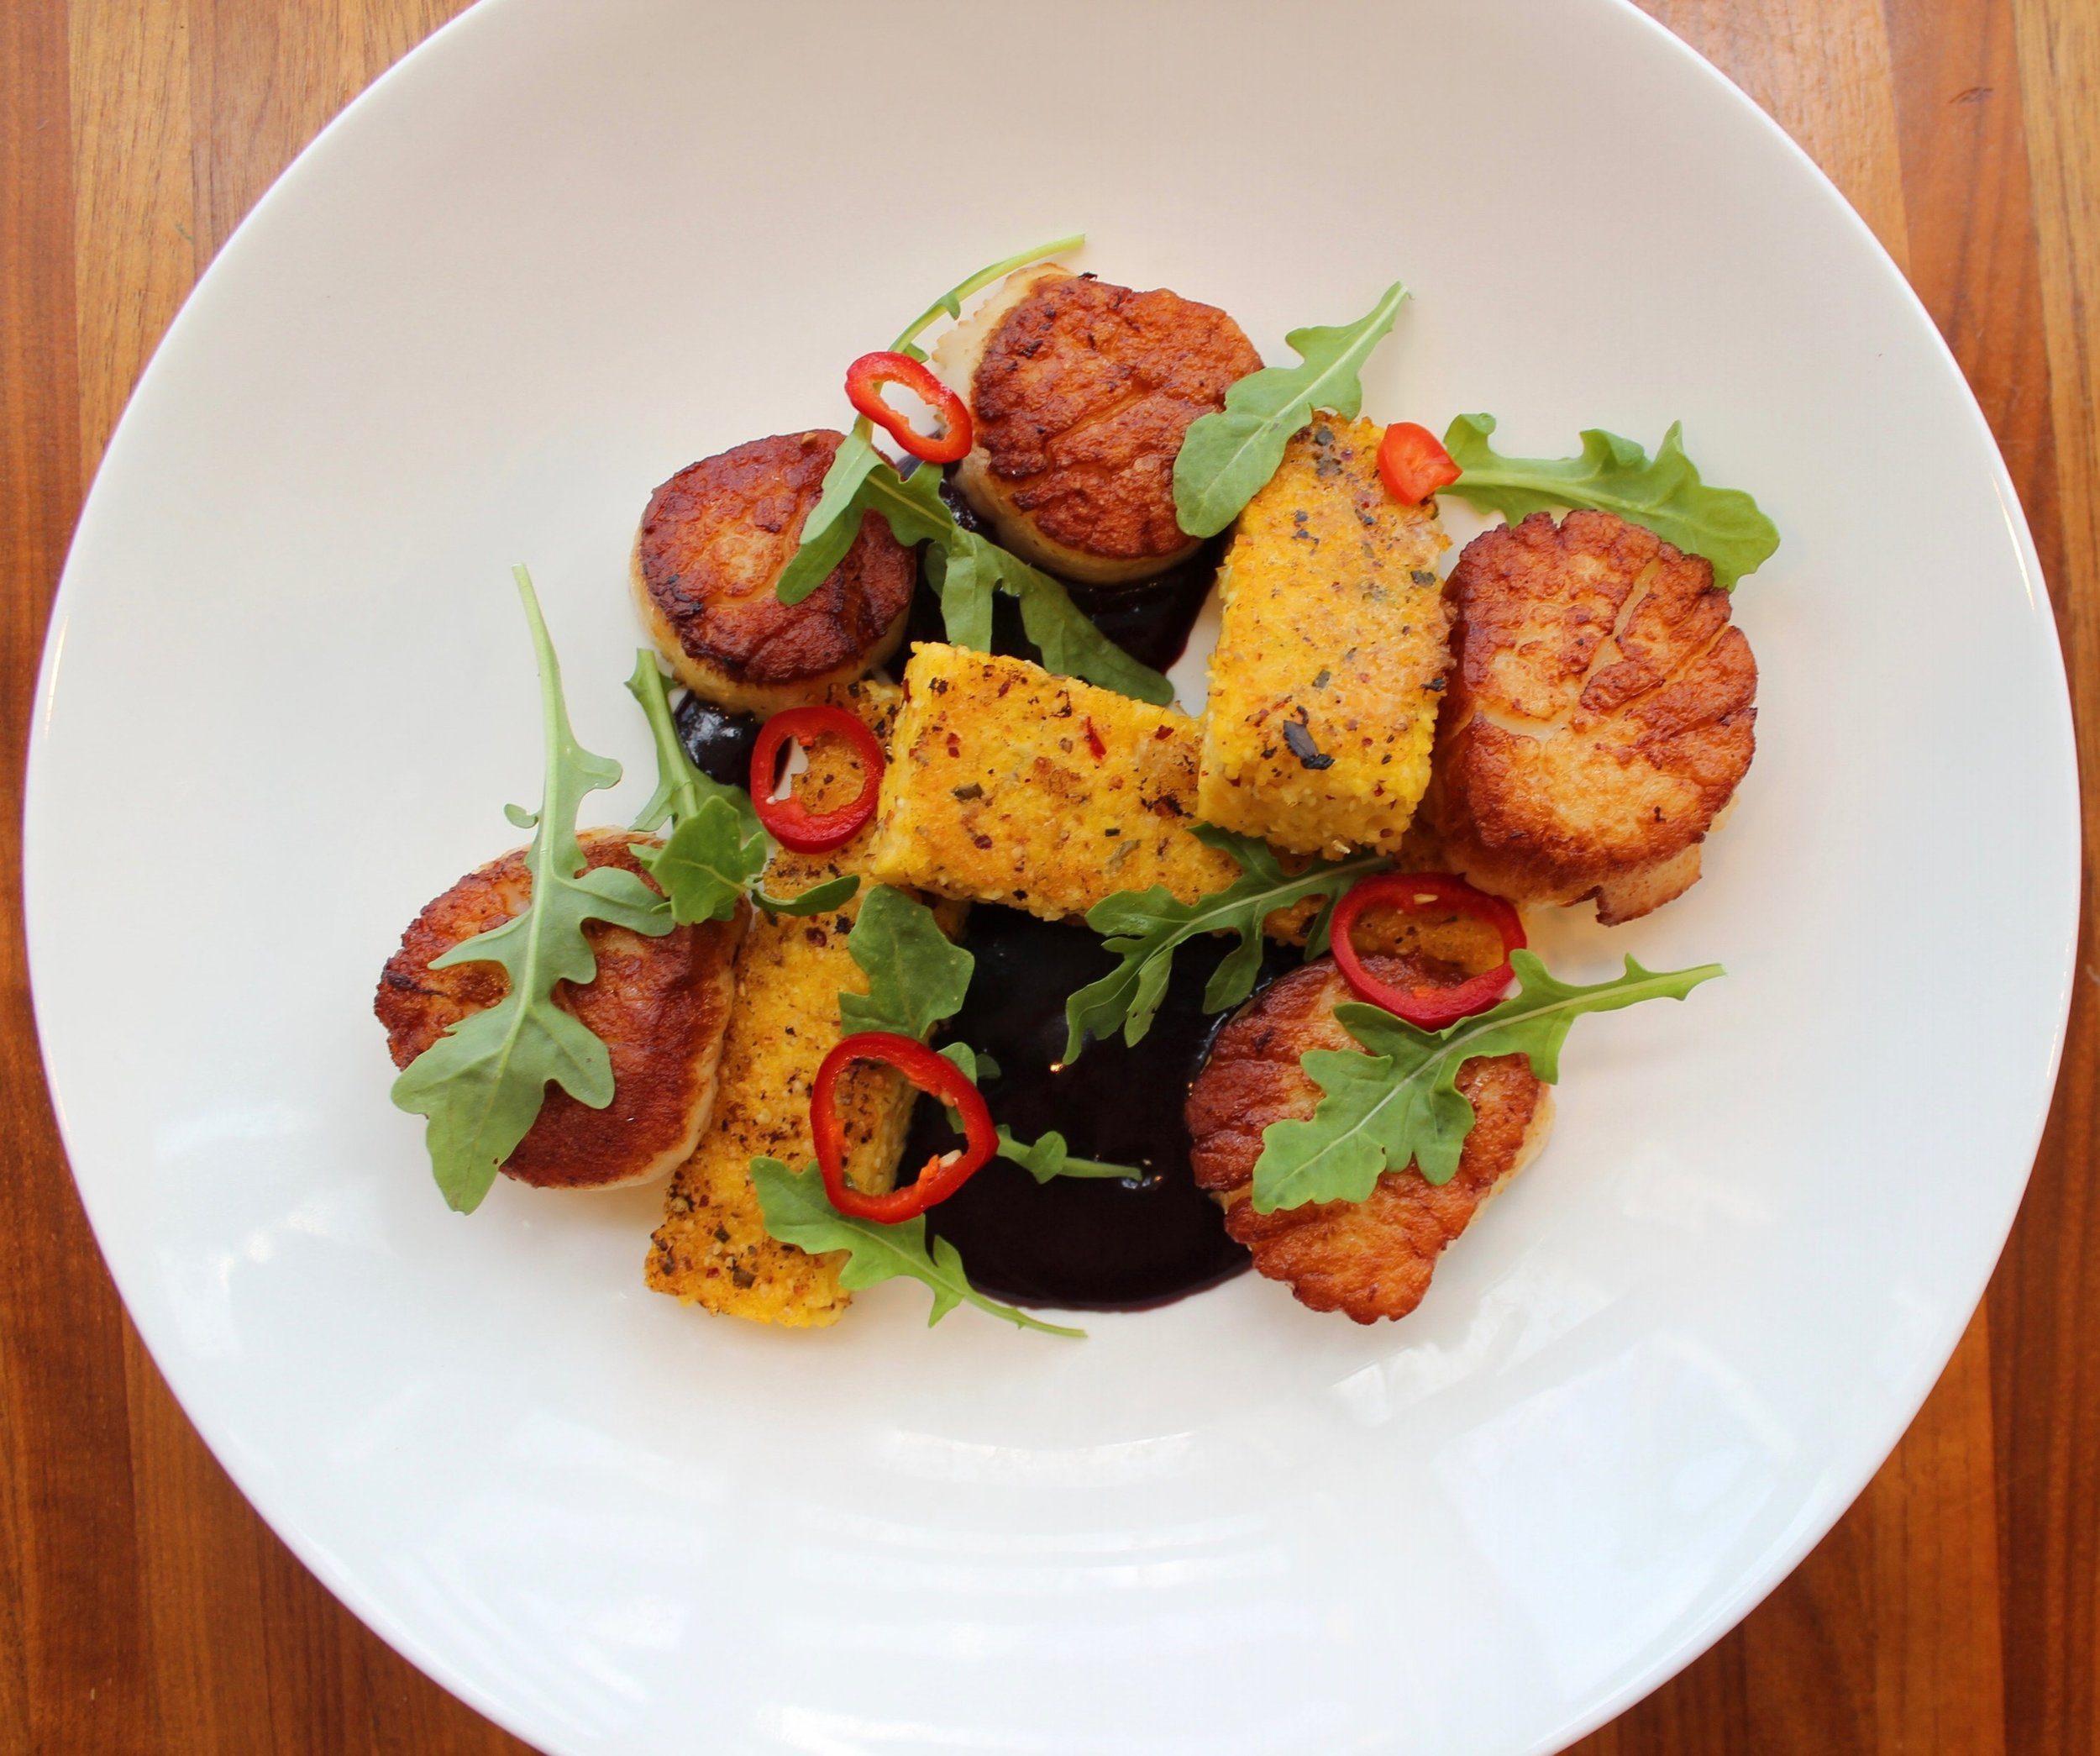 Scallops with coriander-fresno-spiced polenta cakes, blackberry ketchup, pickled fresno peppers, and arugula